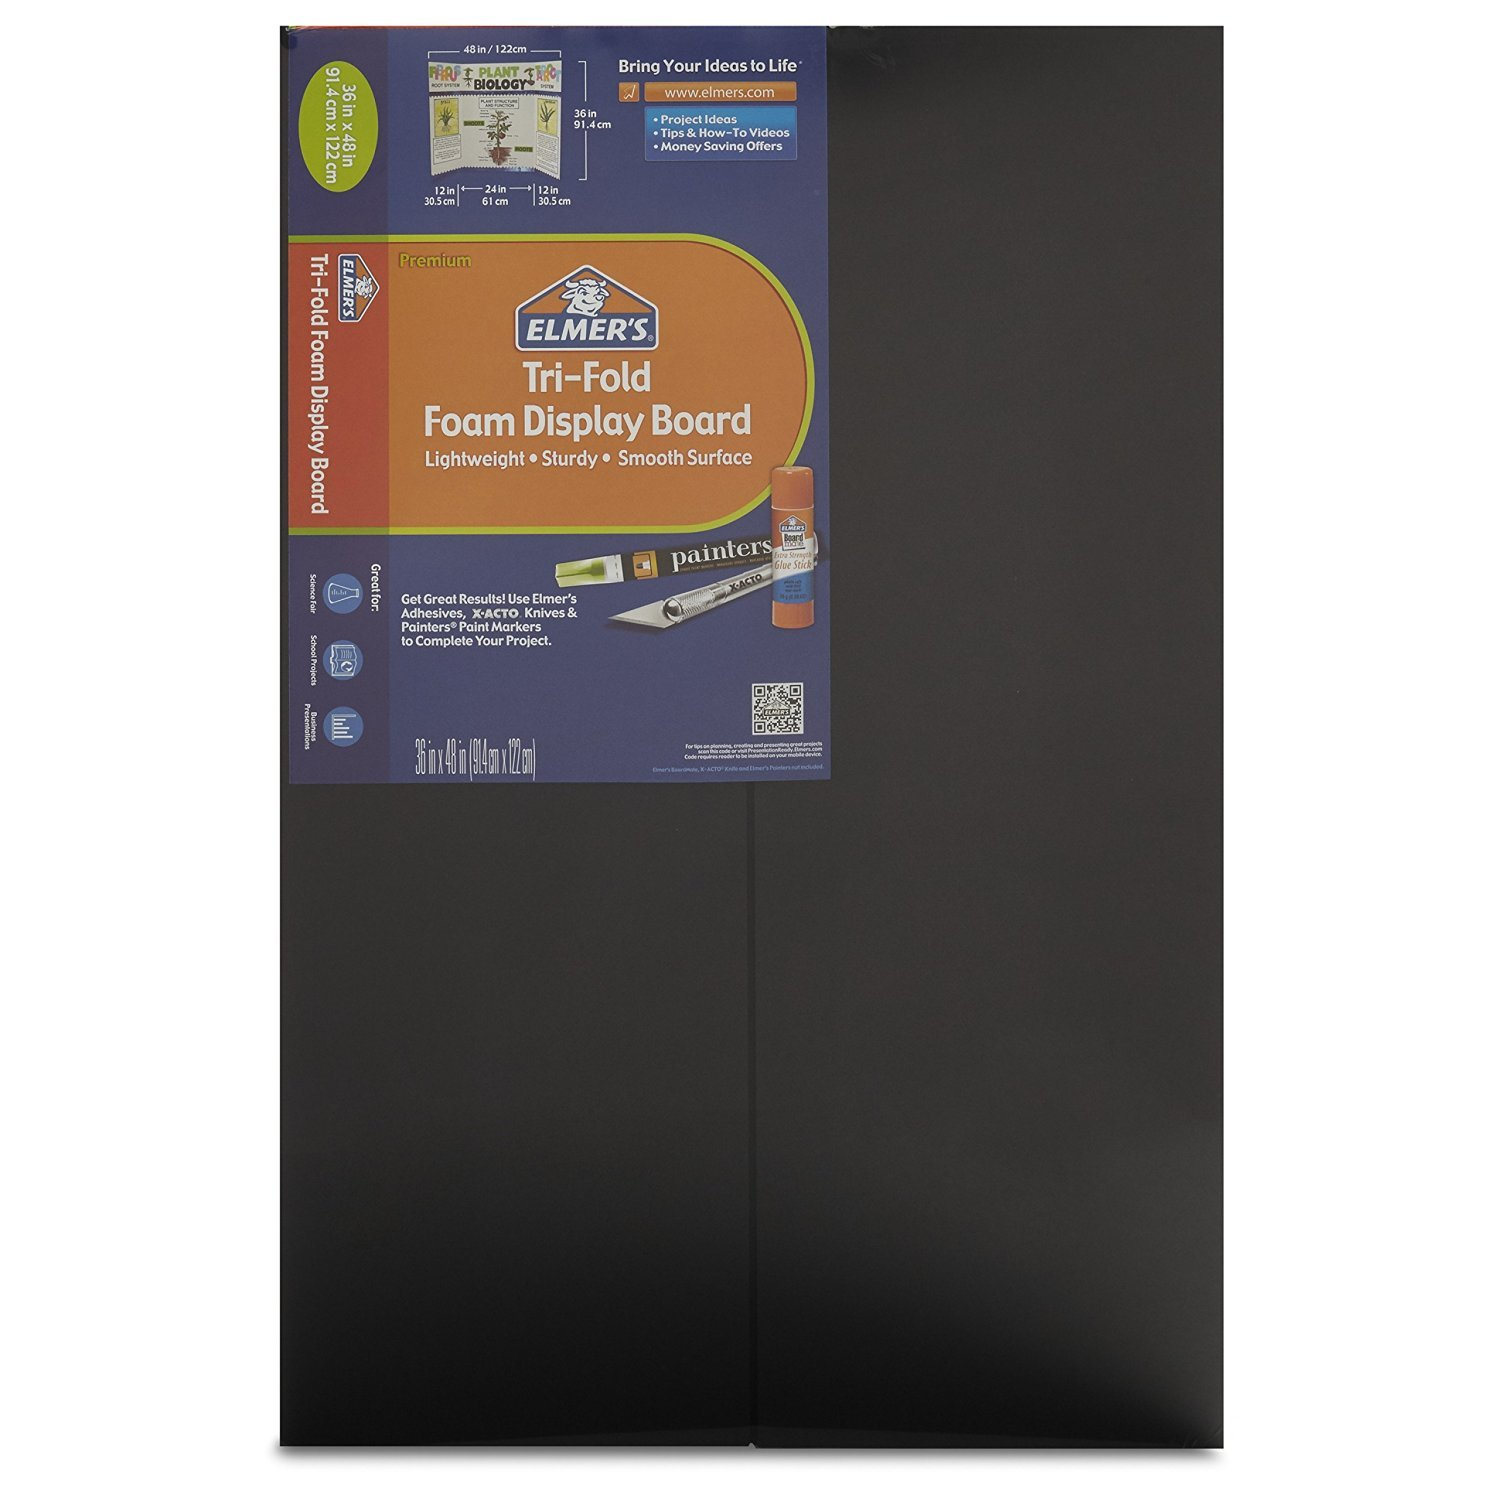 Elmers Tri-Fold Premium IUsQk Foam Display Board, 36x48 Inch, Black, 10 Pack